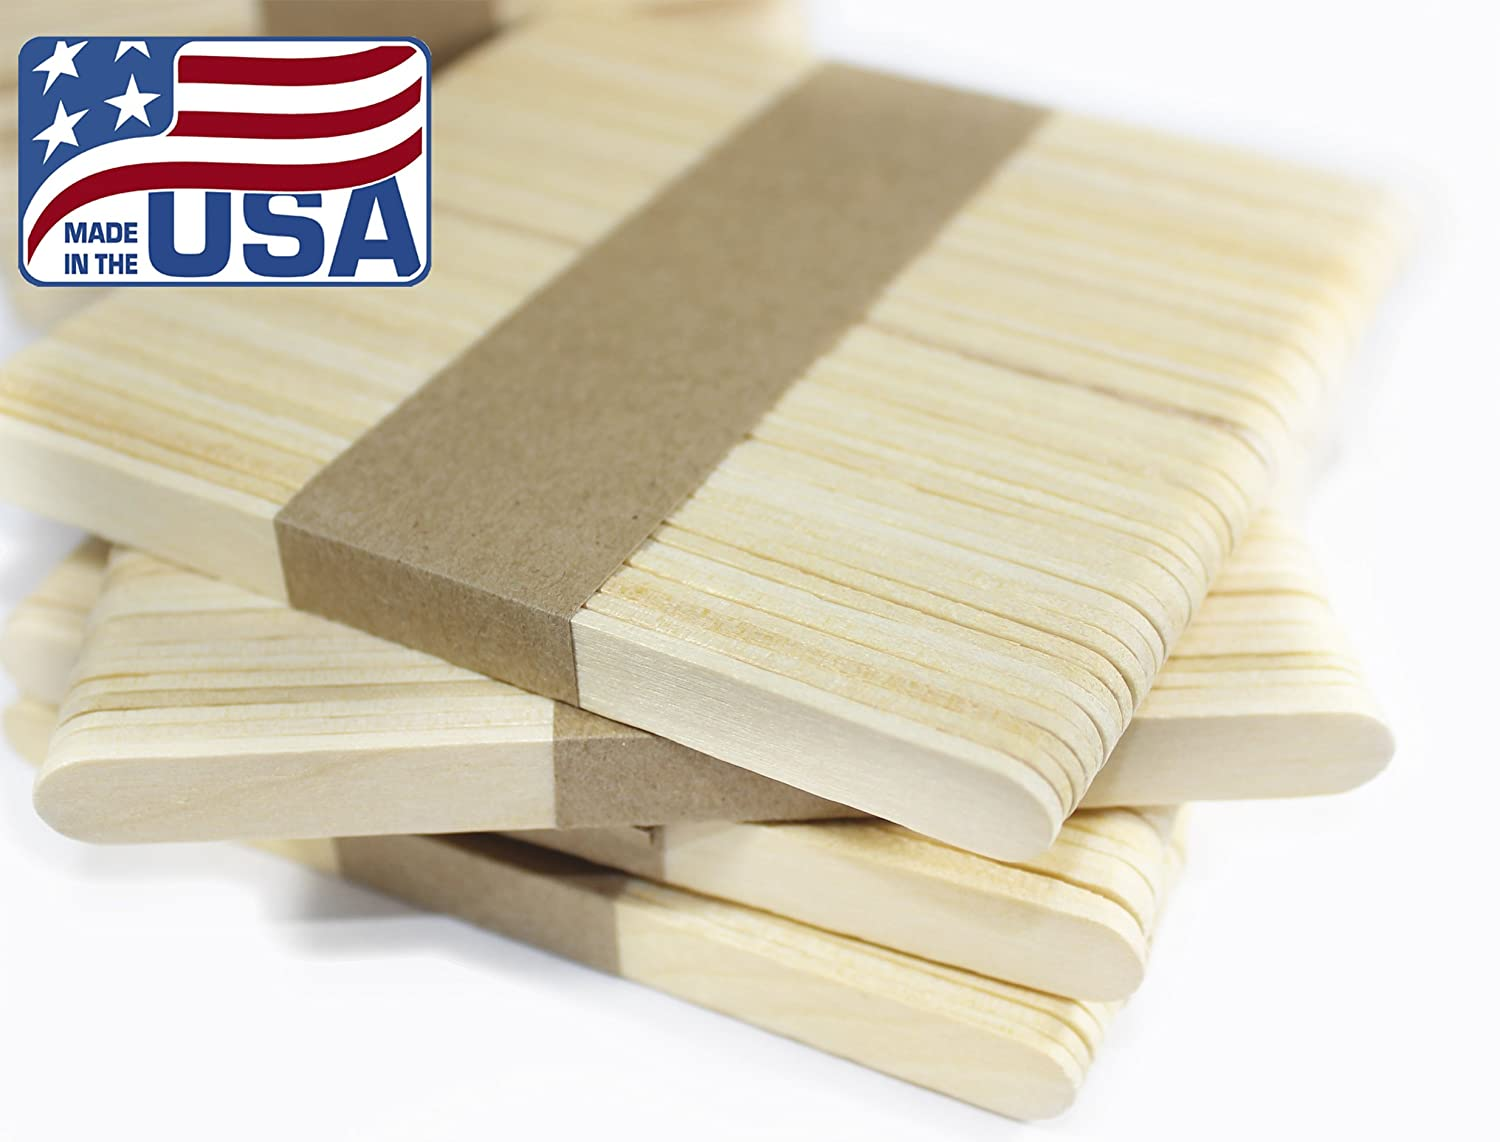 Wooden Ice Cream Stick • Popsicle Stick • Caramel Apple Stick • Crafts Stick • Wooden Treat Sticks • Building Model (50) SBB Midwest Co